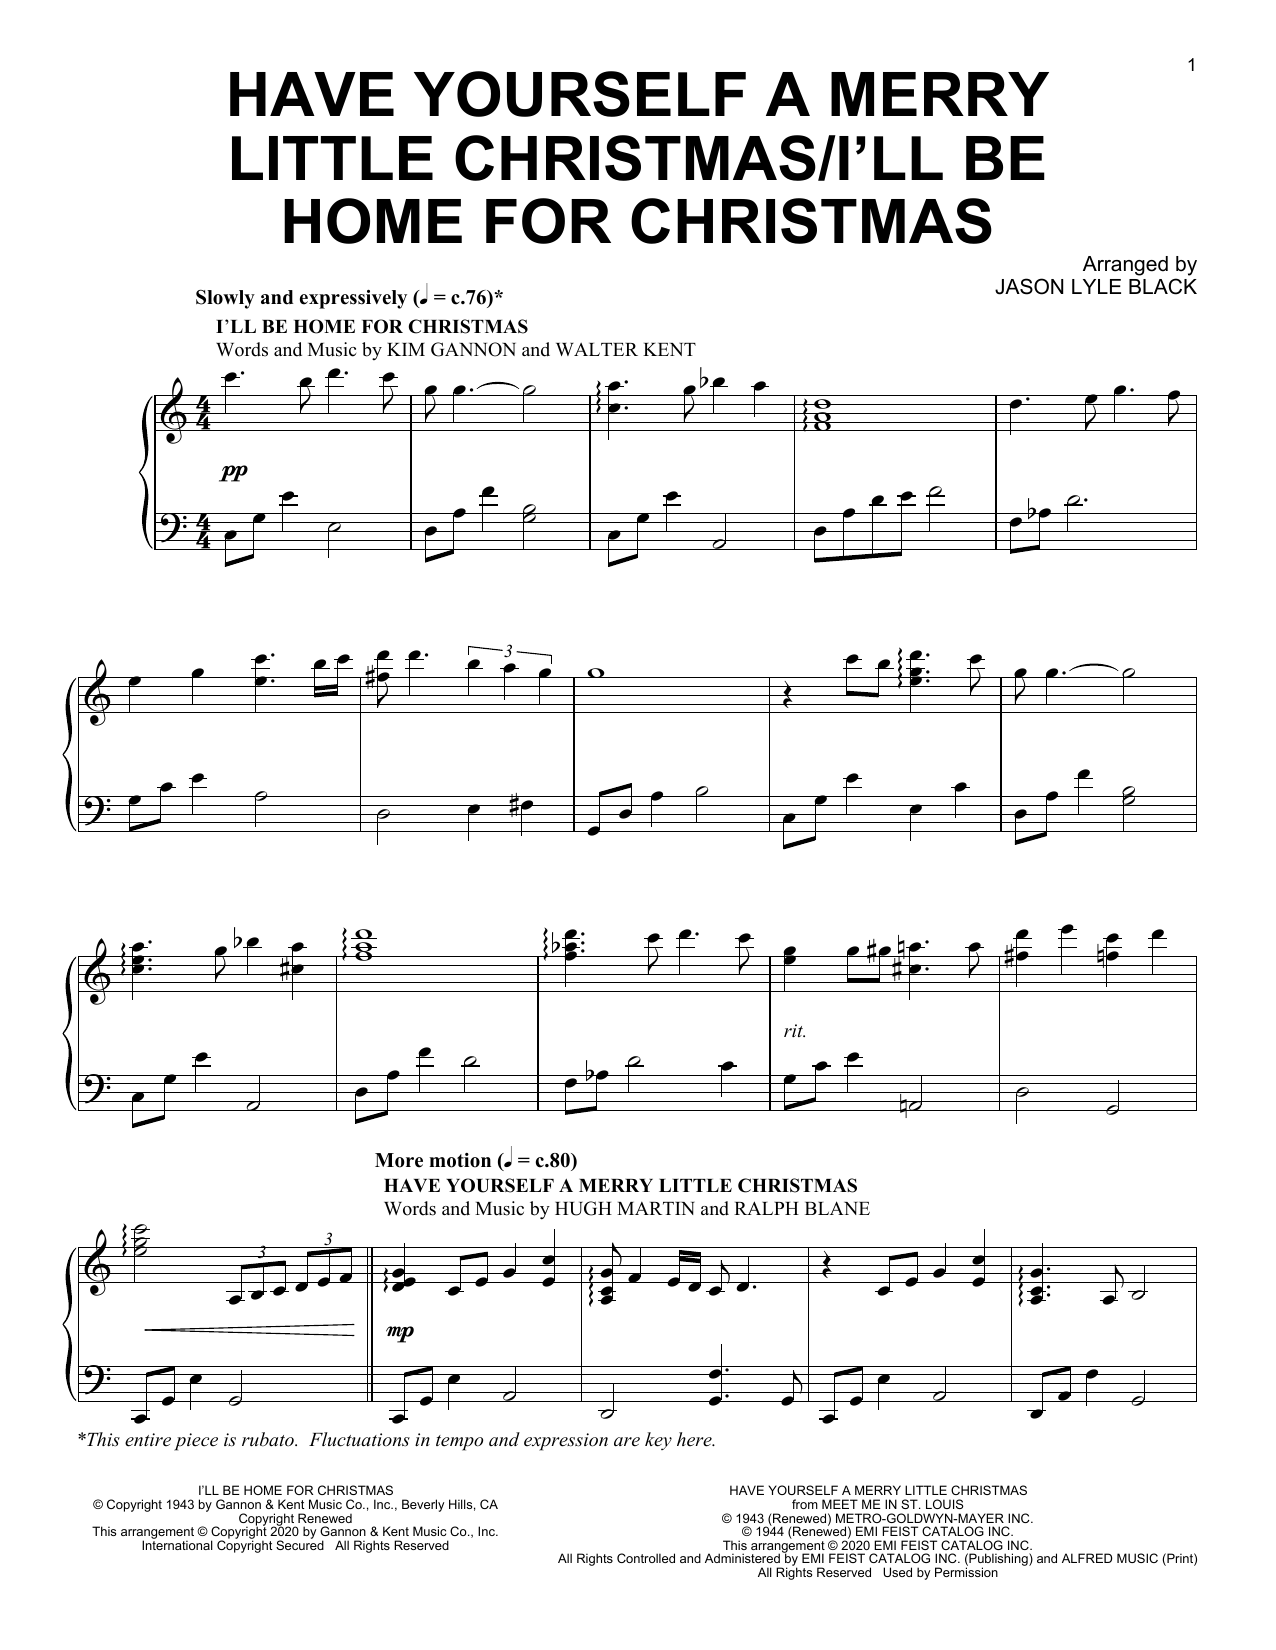 Jason Lyle Black Have Yourself A Merry Little Christmas/I'll Be Home For Christmas sheet music notes and chords. Download Printable PDF.